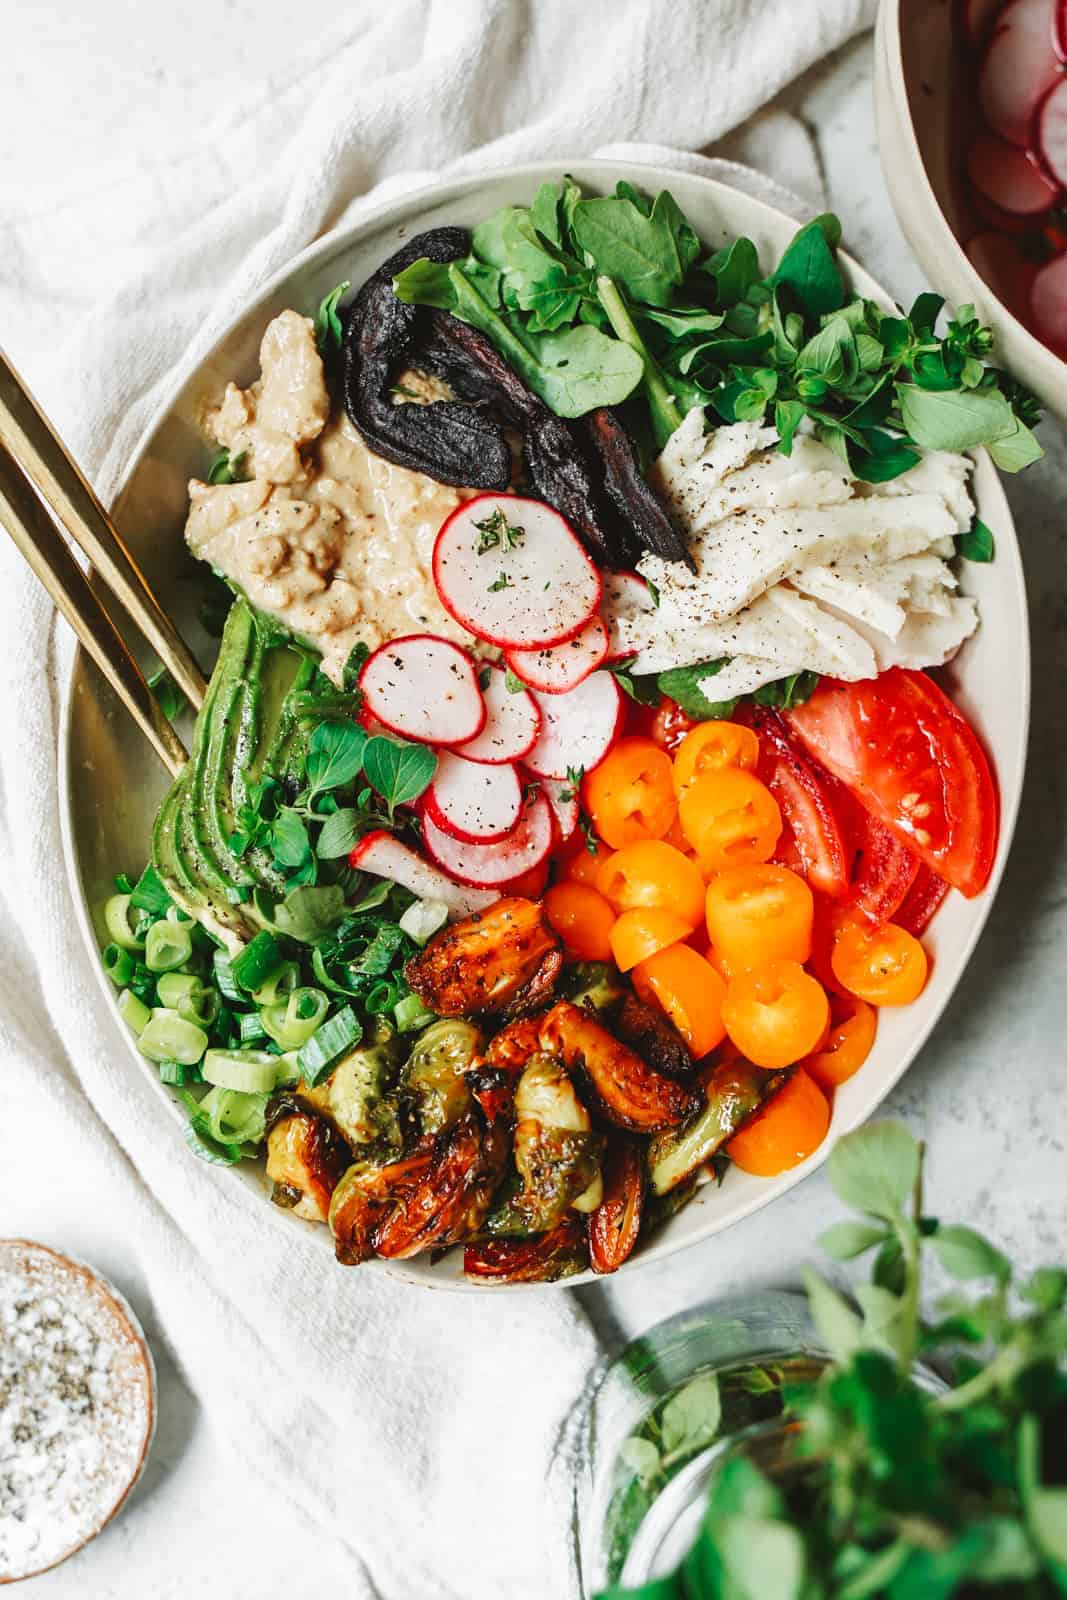 A colorful vegan cobb salad in a serving dish.